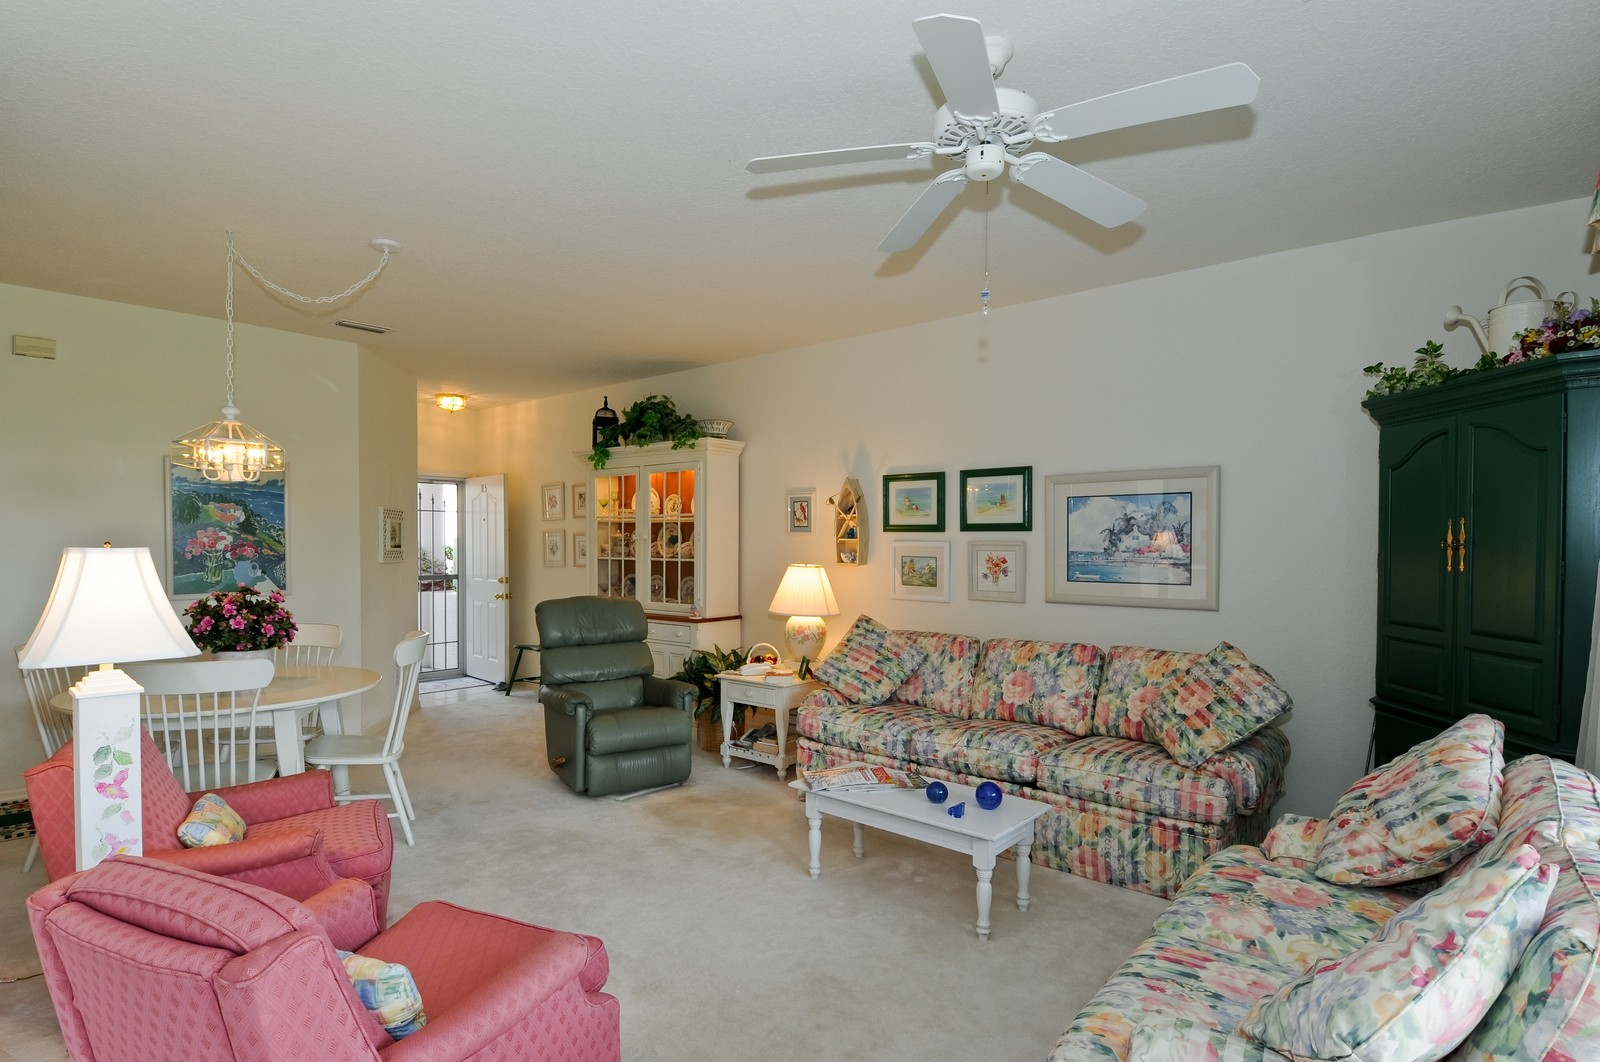 Real Estate Photography - 13060 Hamilton Harbour Dr., H-5, Naples, FL, 34110 - Living Room / Dining Room